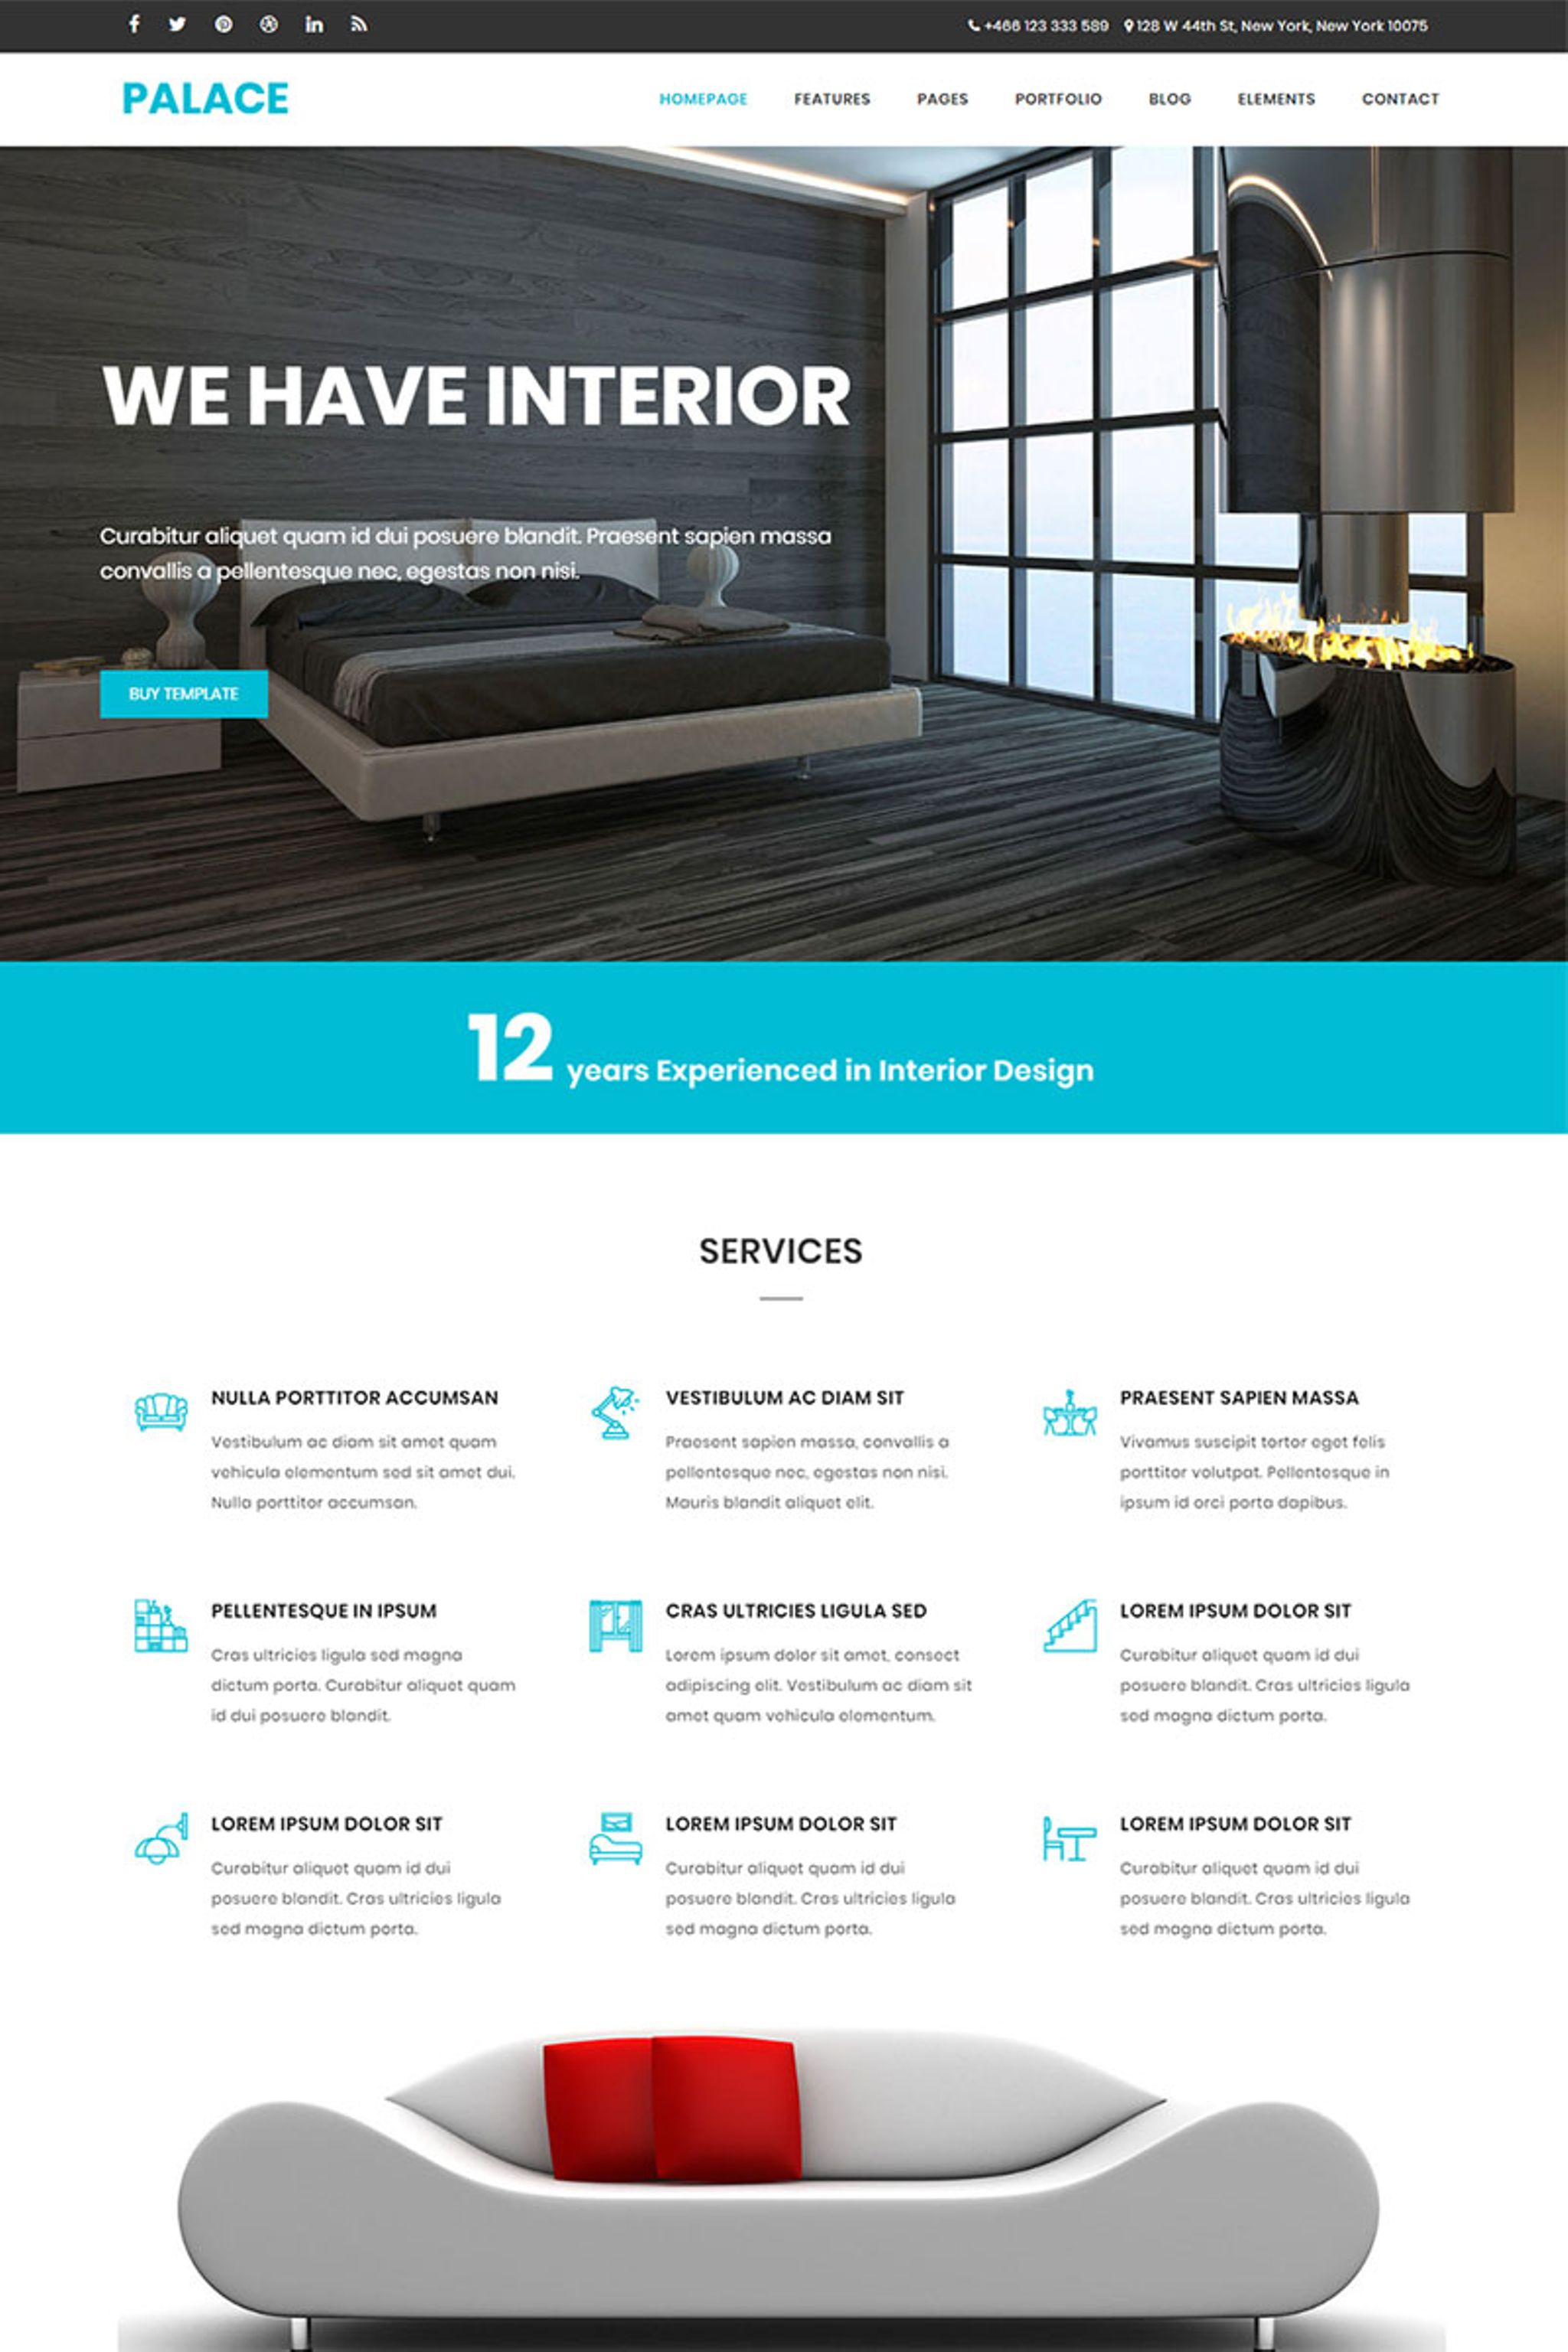 Palace interior architecture html5 bootstrap website for Interior design responsive website templates edge free download